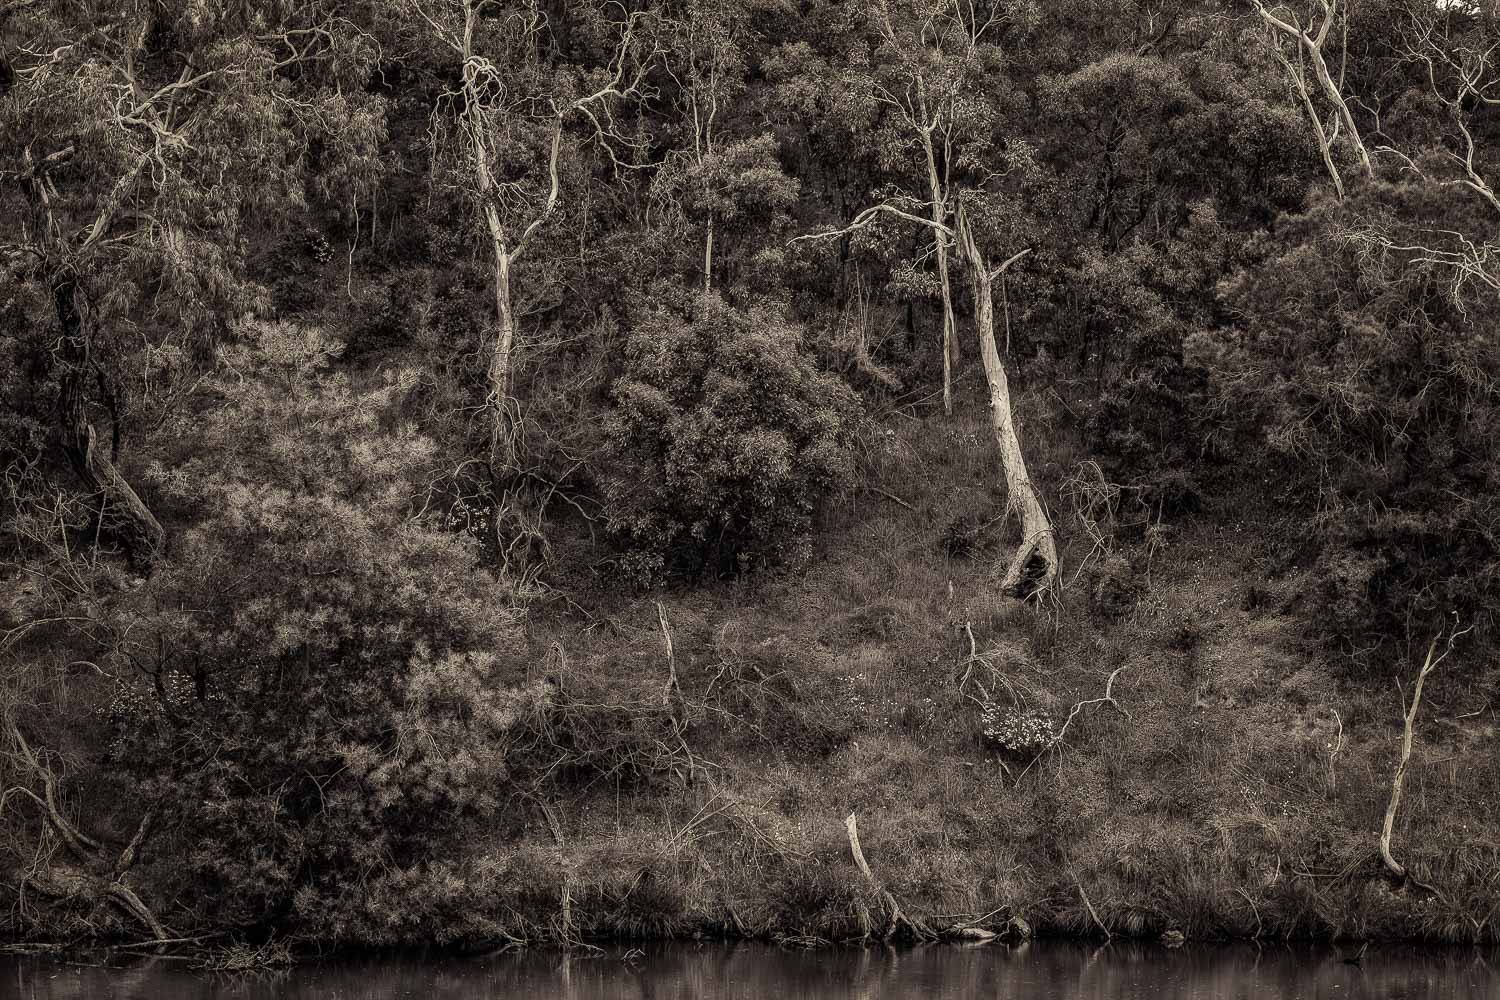 Trees cling to the steep side of the river bank by the  Yarra River  in  Fairfield , Australia